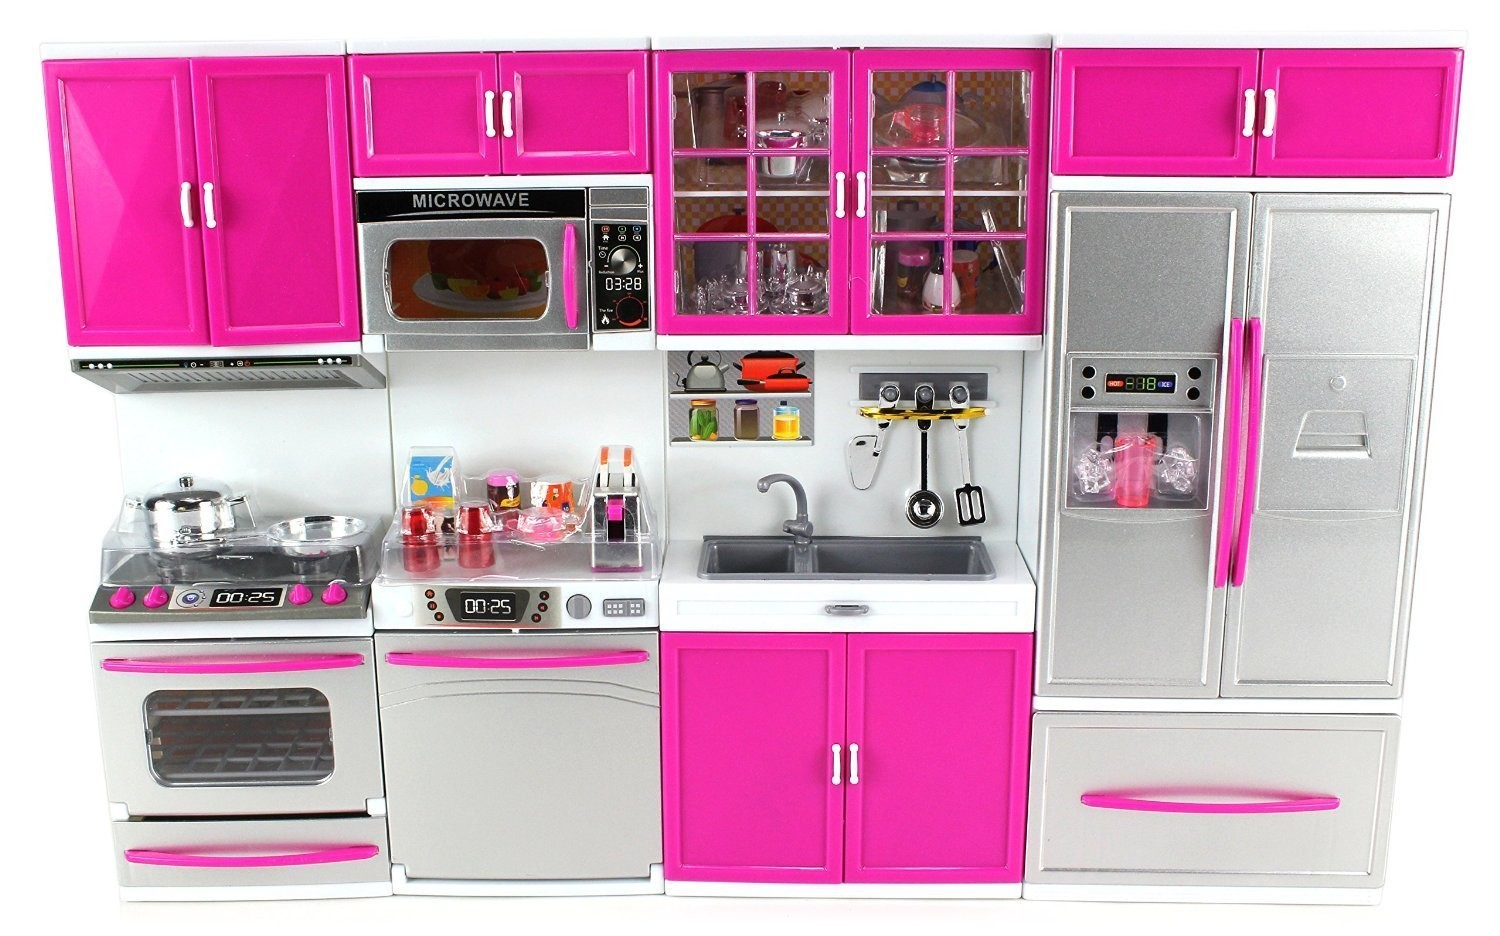 My Modern Kitchen 32 Full Deluxe Kit Battery Operated Kitchen Playset: Refrigerator, Stove, Sink, Microwave